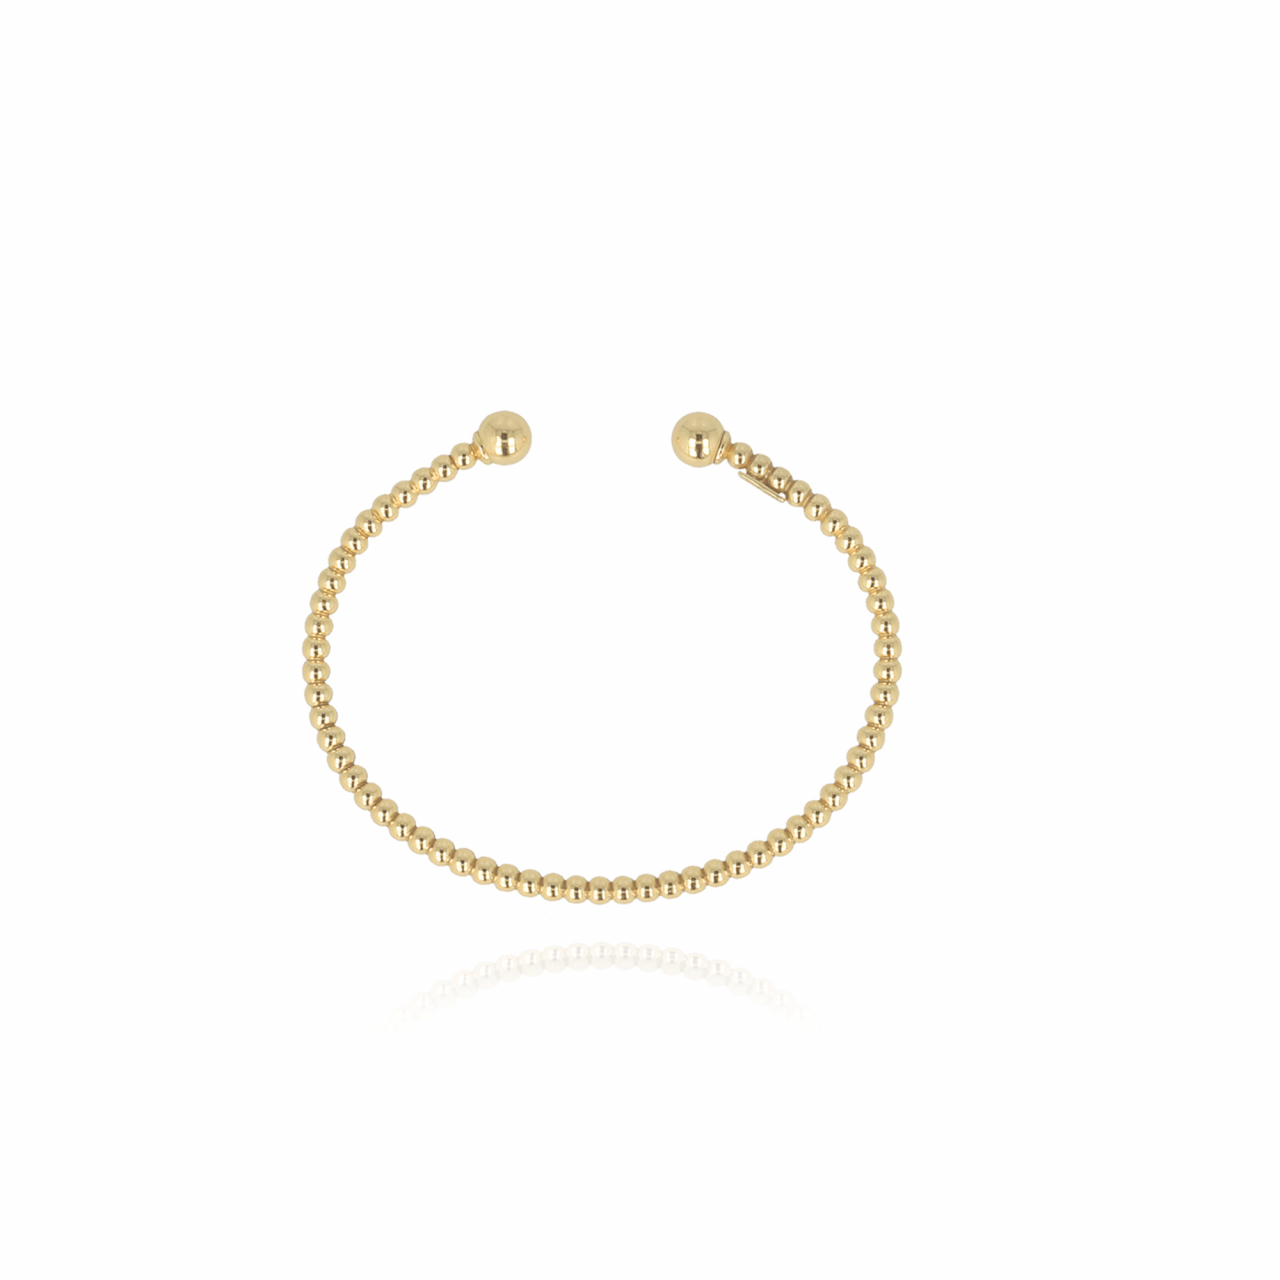 Golden cannonball bangle